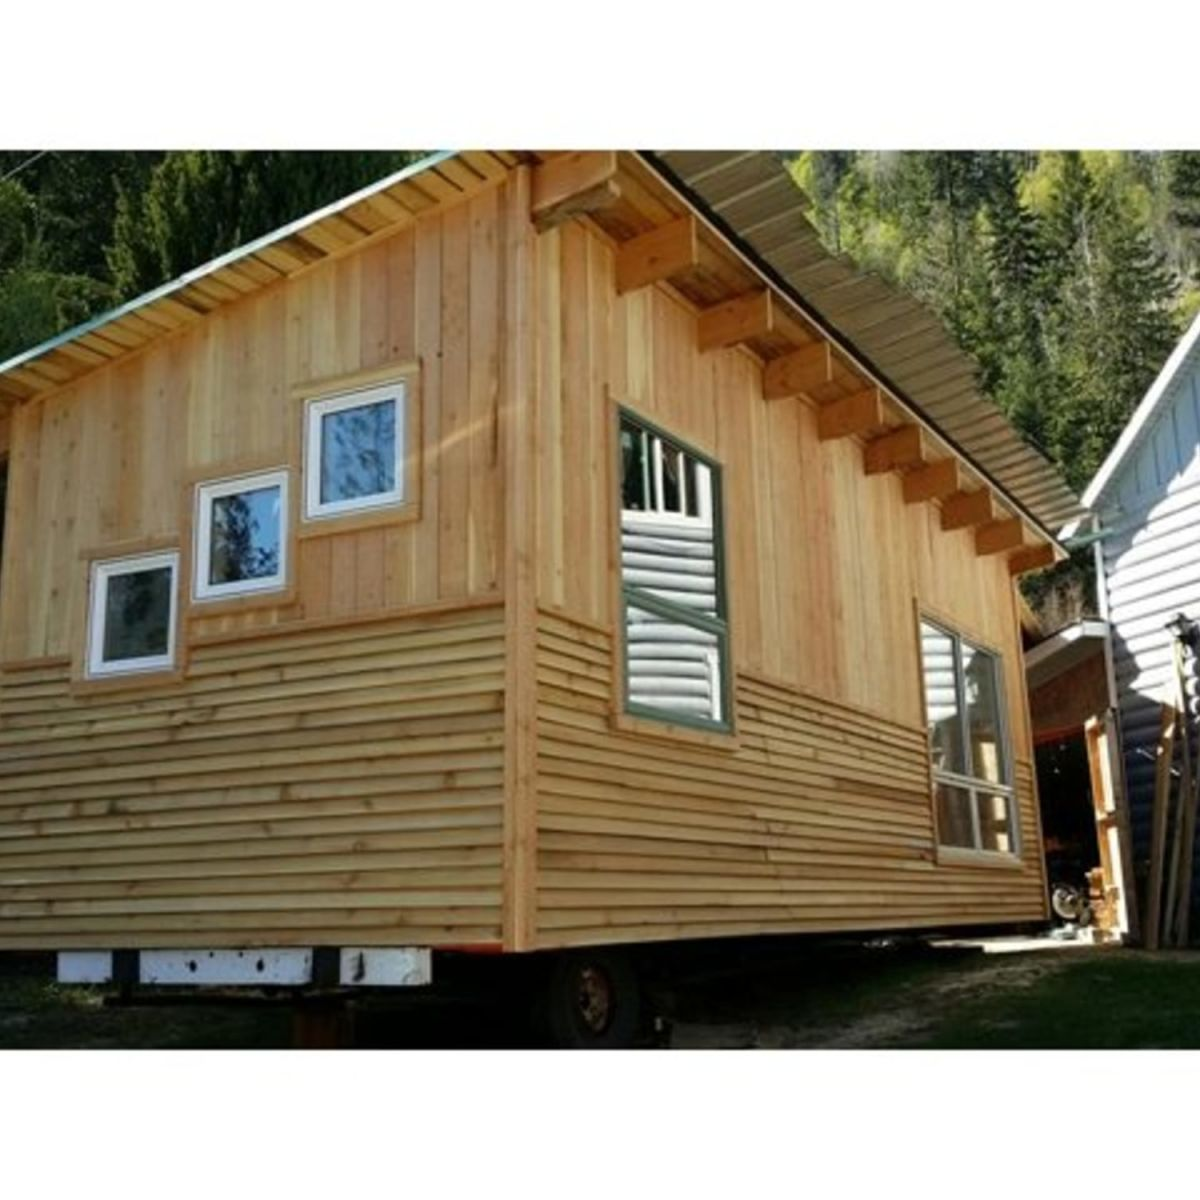 TinyHouse for Sale - Nelson BC - Tiny House for Sale in Nelson, British  Columbia - Tiny House Listings